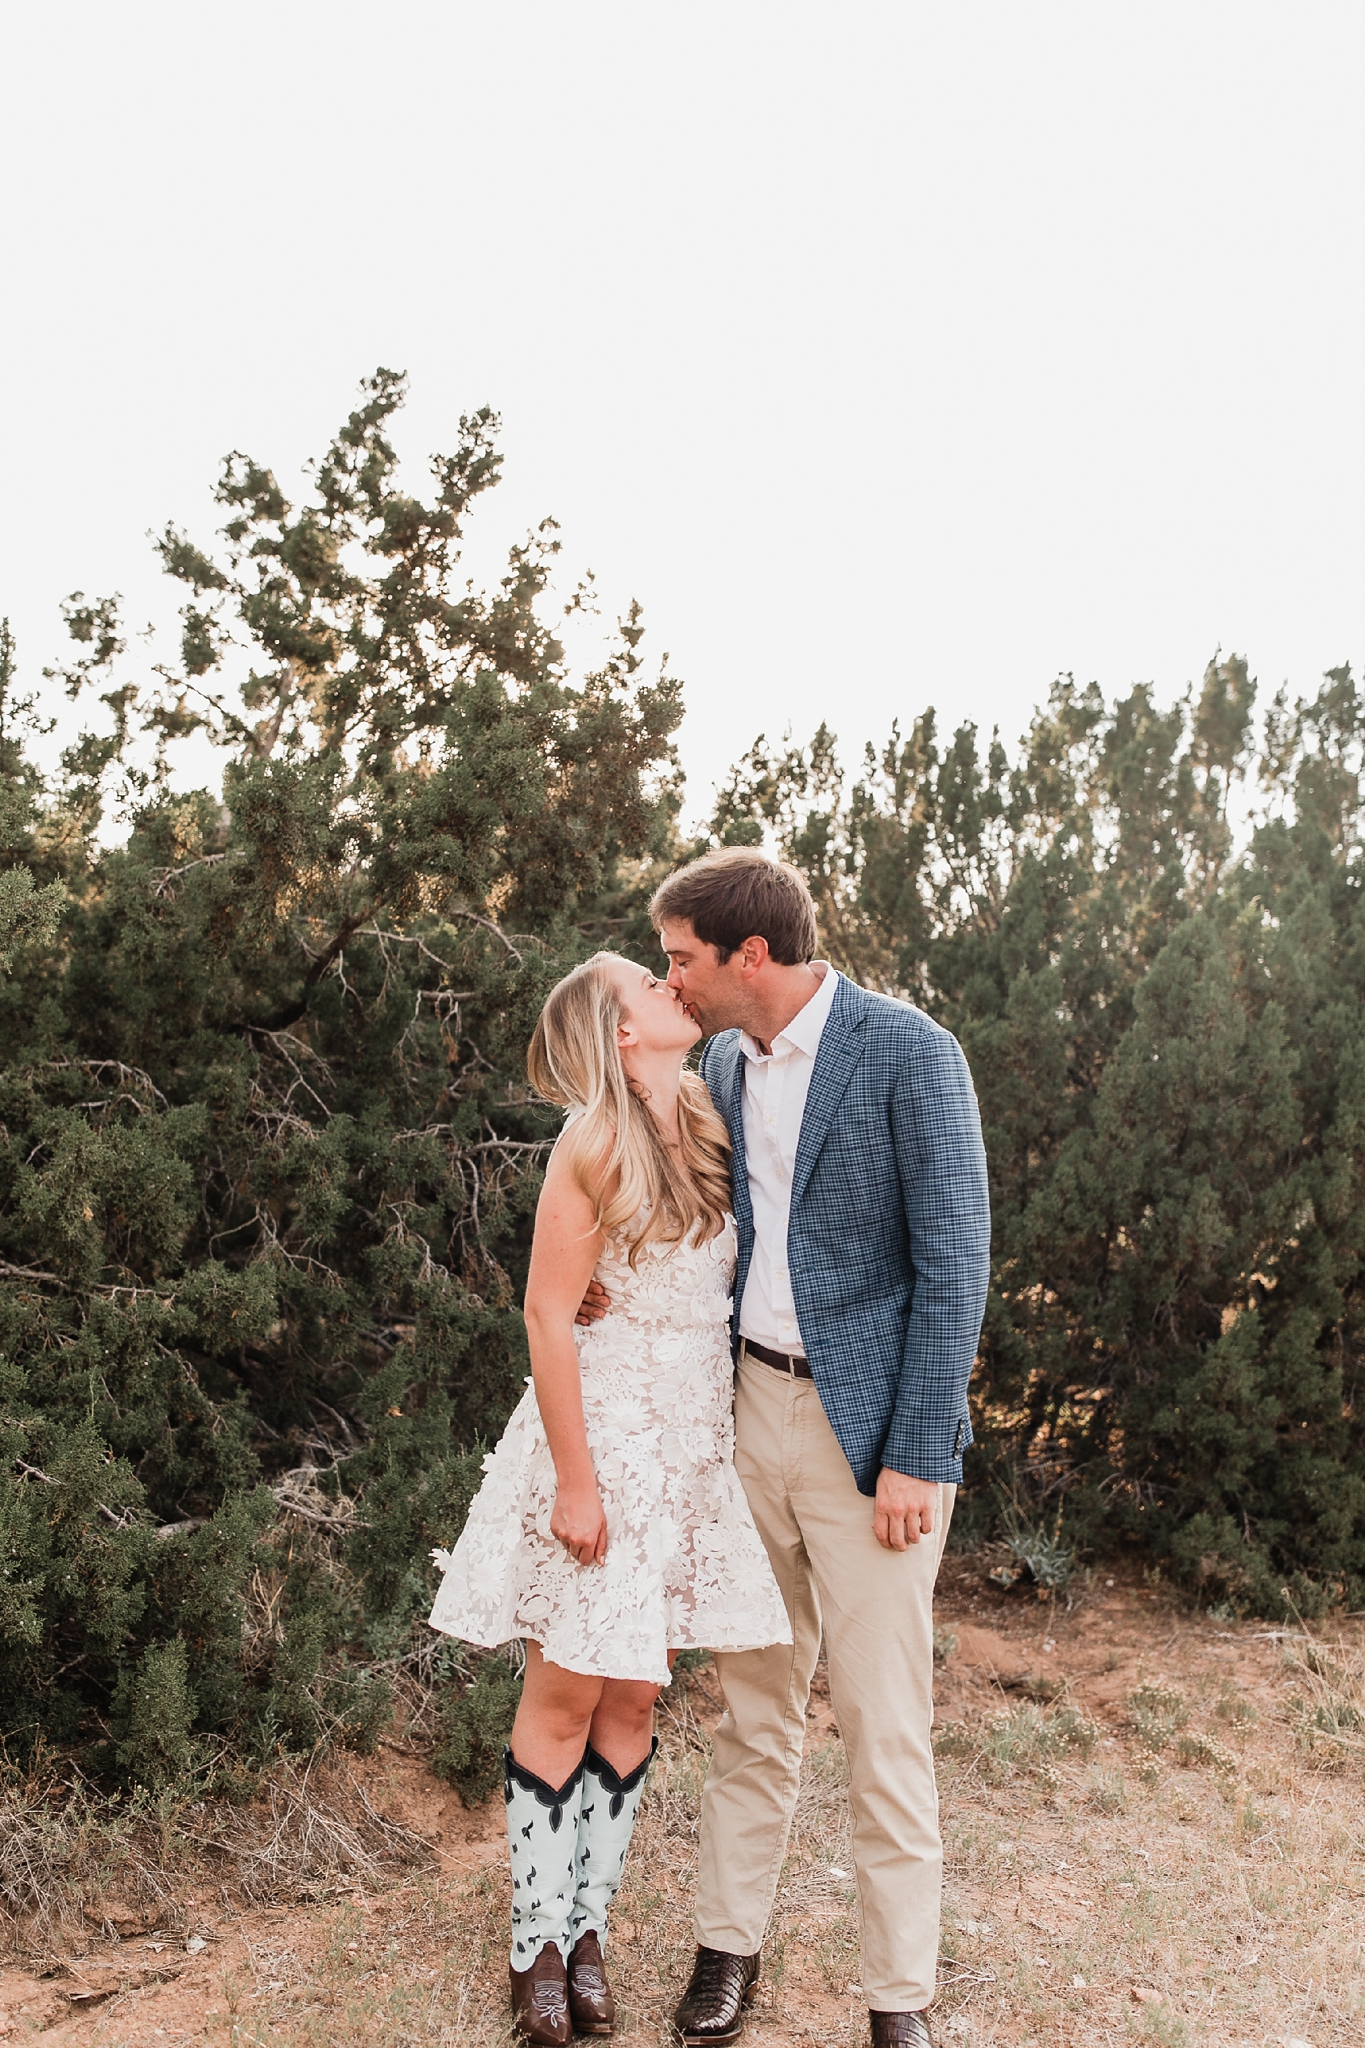 Alicia+lucia+photography+-+albuquerque+wedding+photographer+-+santa+fe+wedding+photography+-+new+mexico+wedding+photographer+-+new+mexico+wedding+-+las+campanas+wedding+-+rehearsal+dinner+-+wedding+weekend_0019.jpg